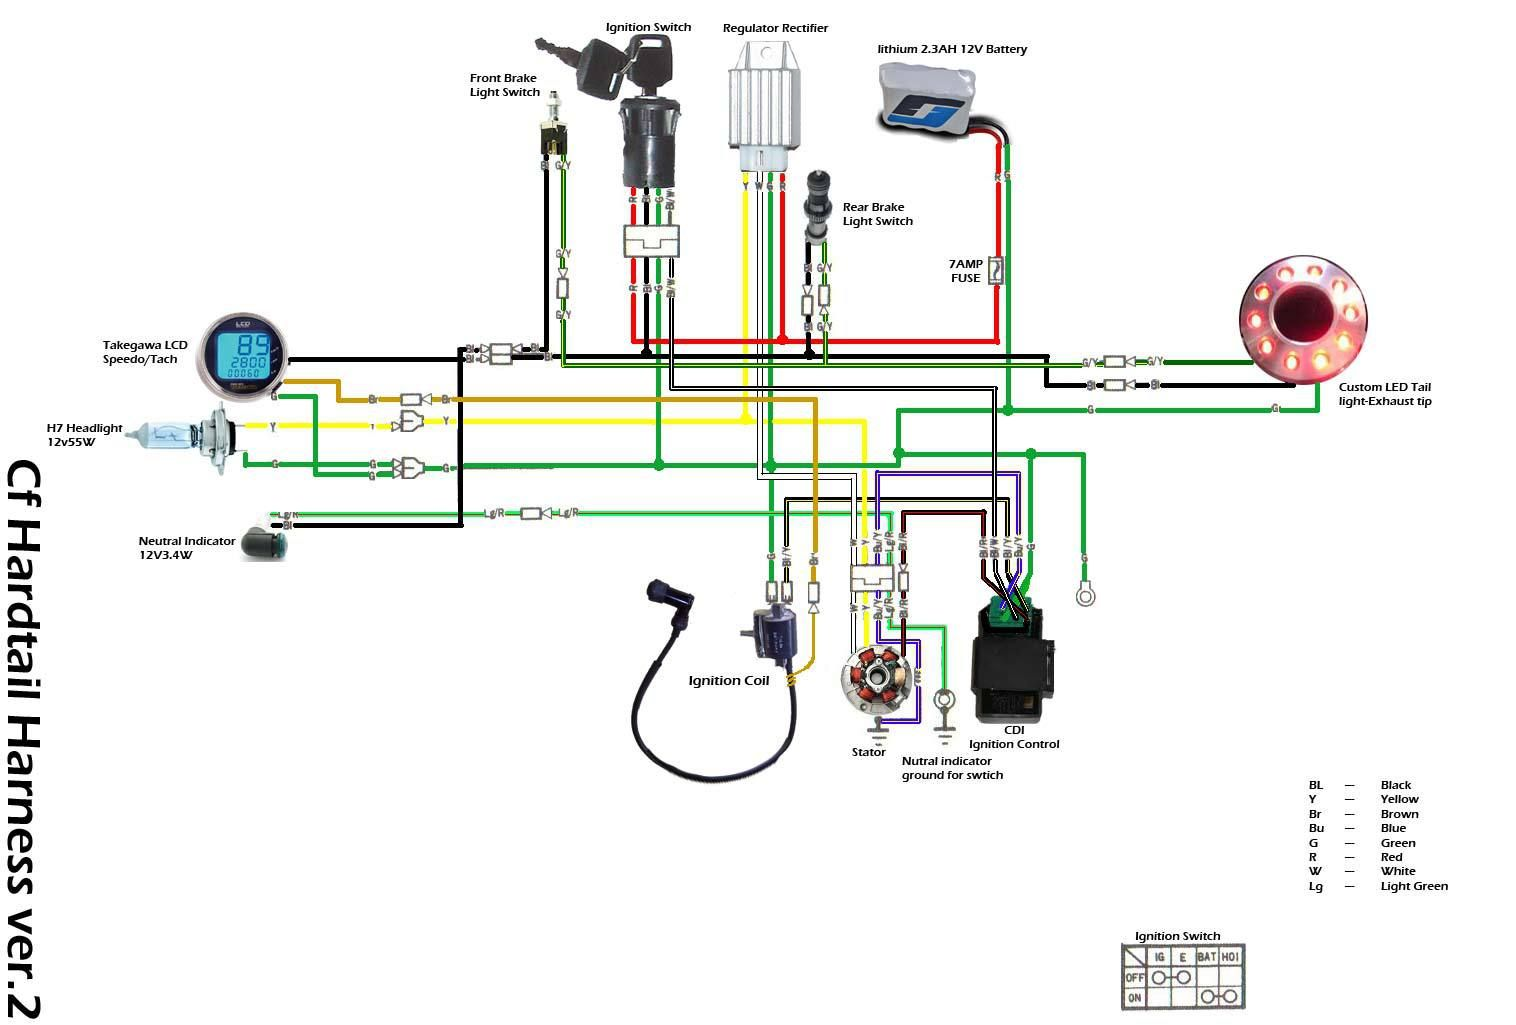 hight resolution of basic wiring diagram 110v schema diagram database basic switch wiring 110